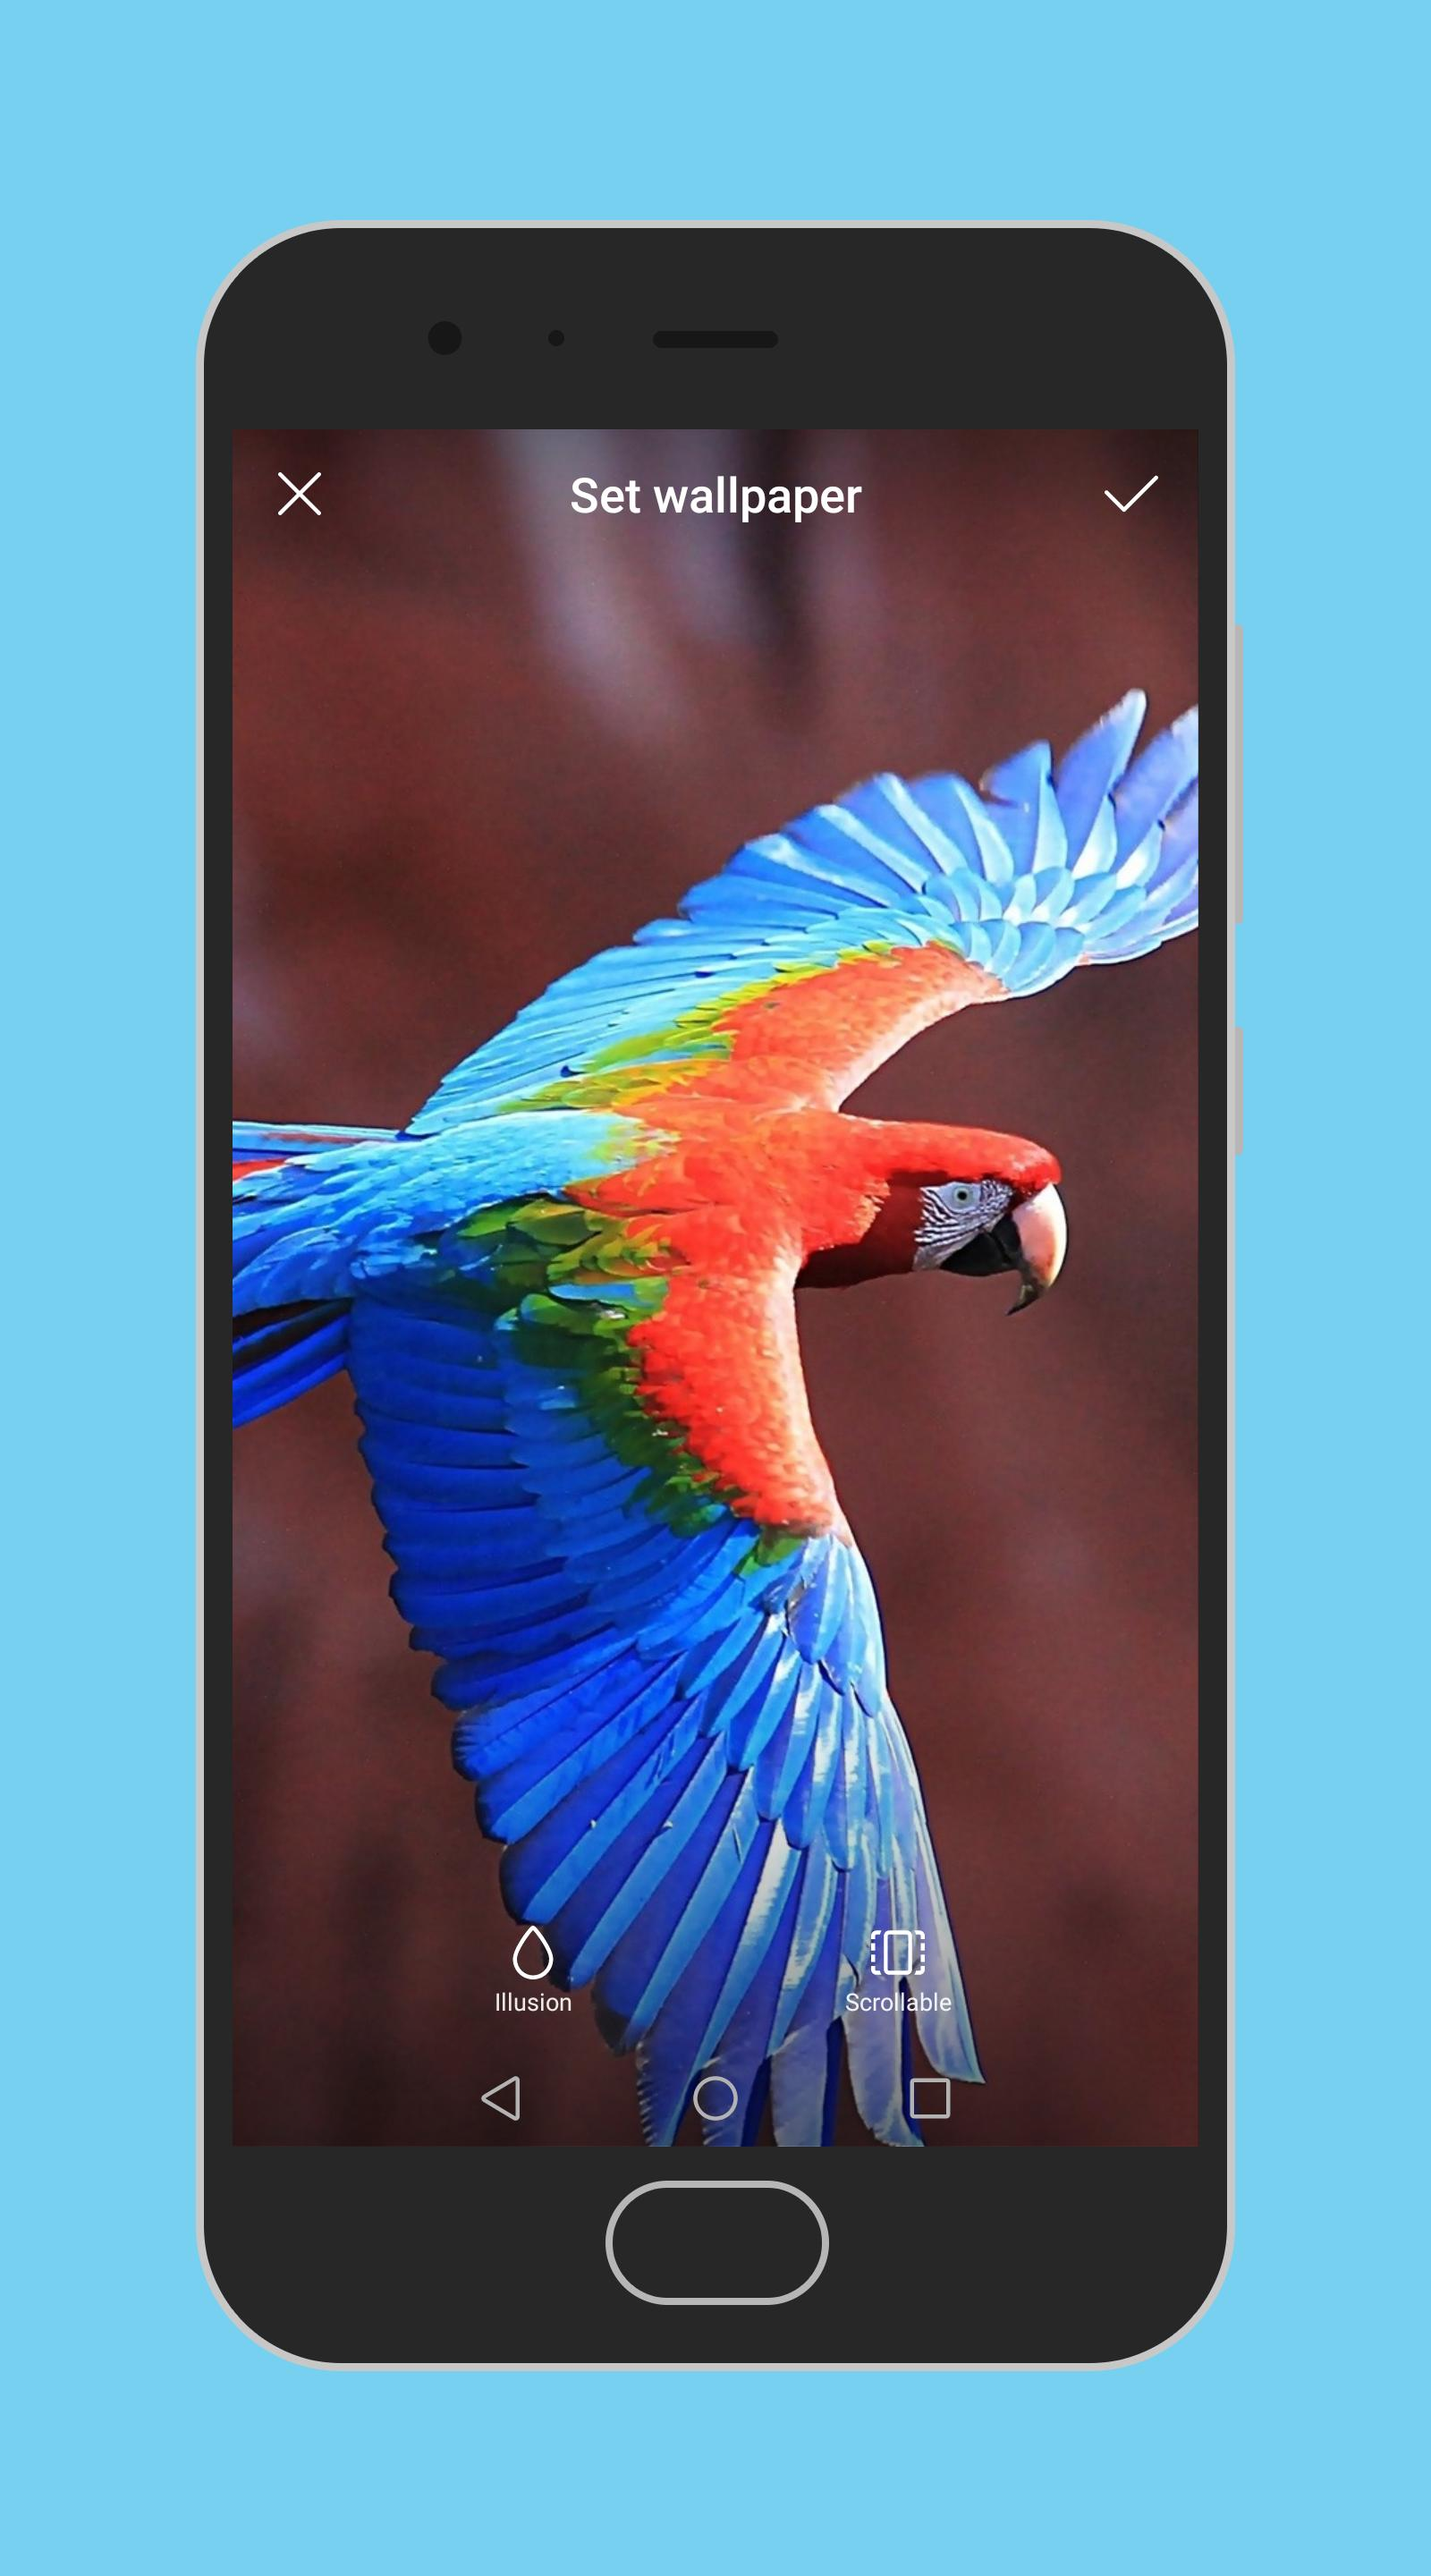 Wallpapers - Pocophone F1 for Android - APK Download